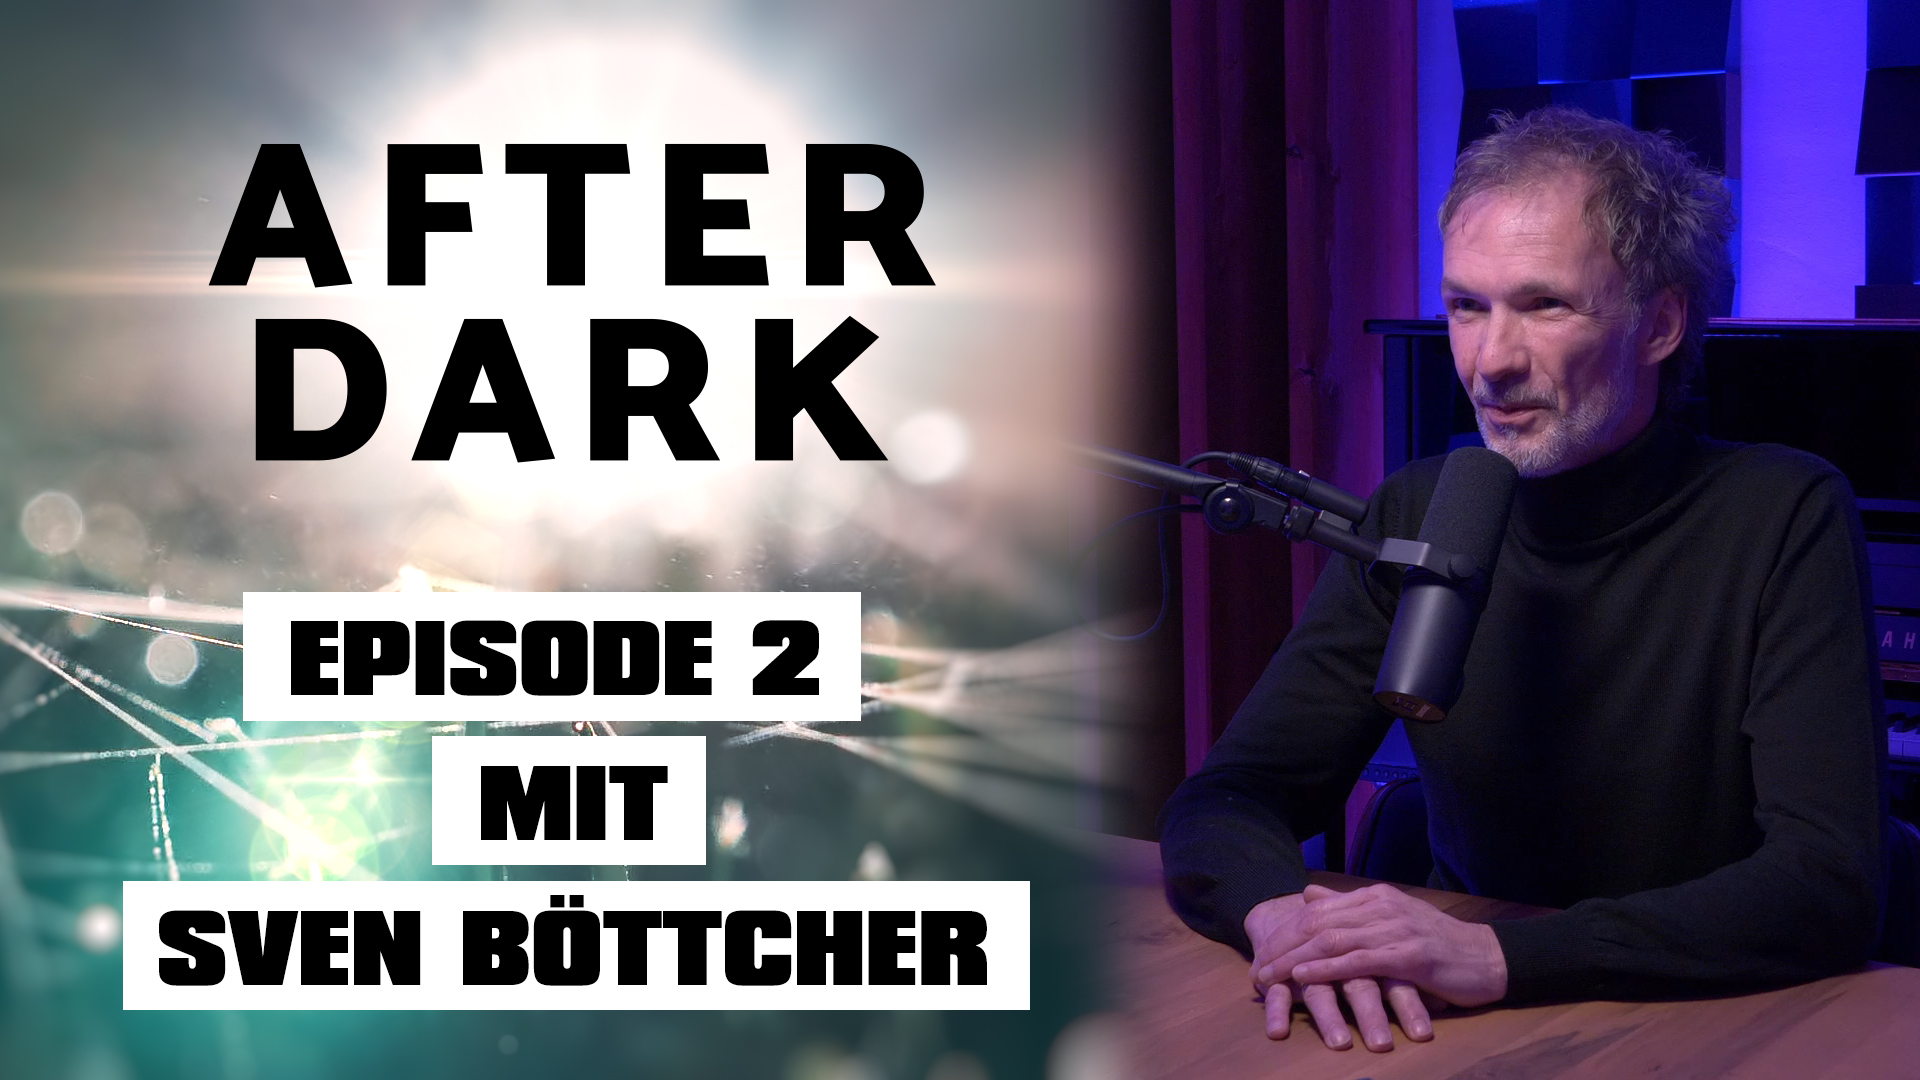 AFTER DARK EPISODE 2 mit Sven Böttcher